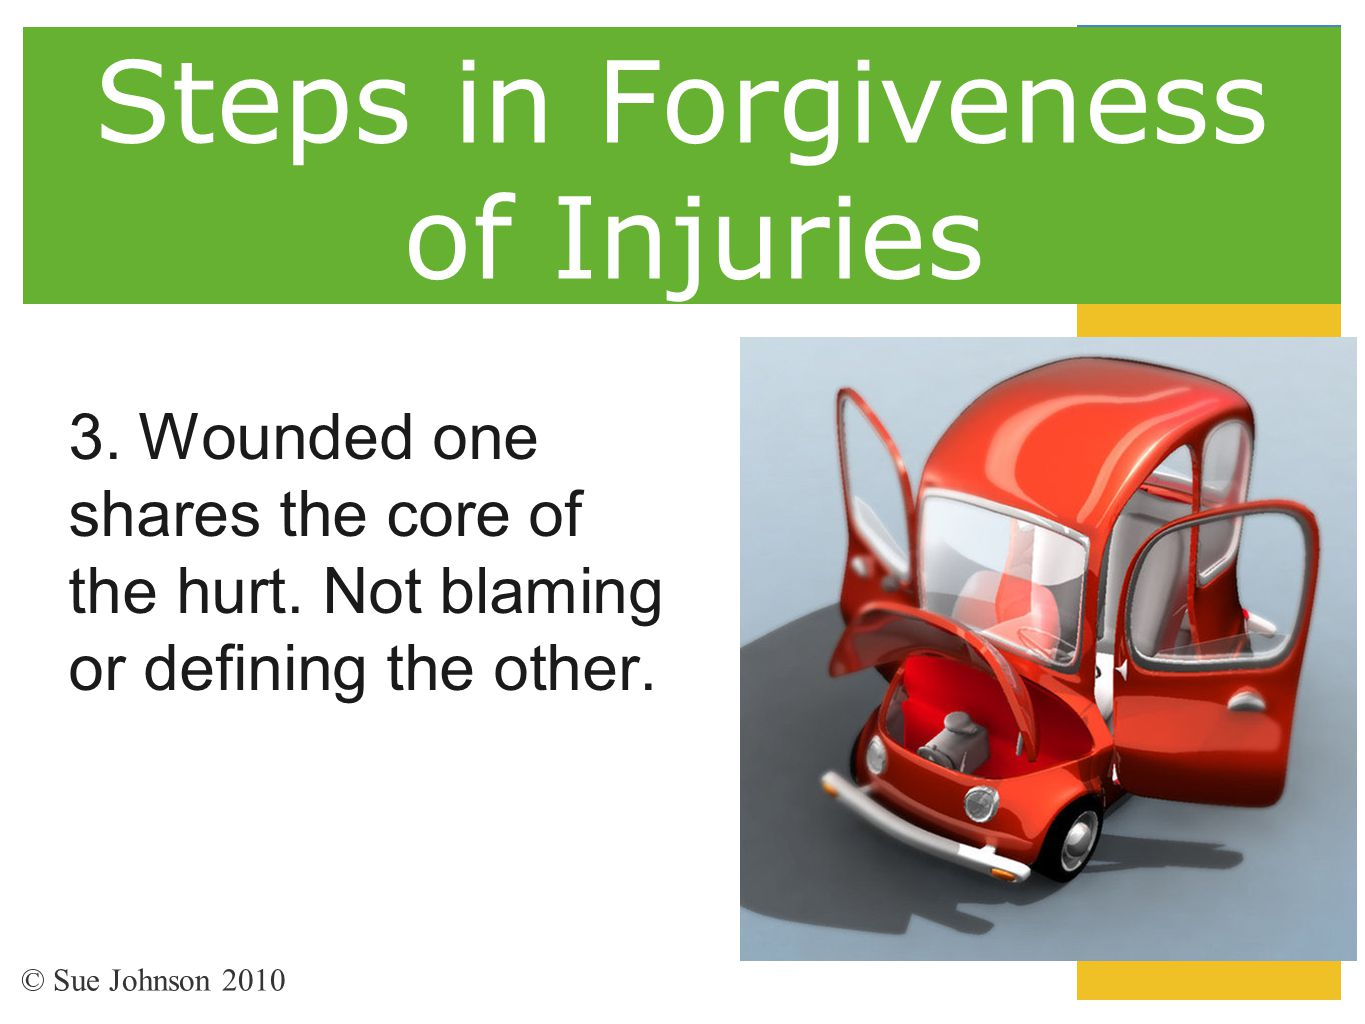 Steps in Forgiveness of Injuries